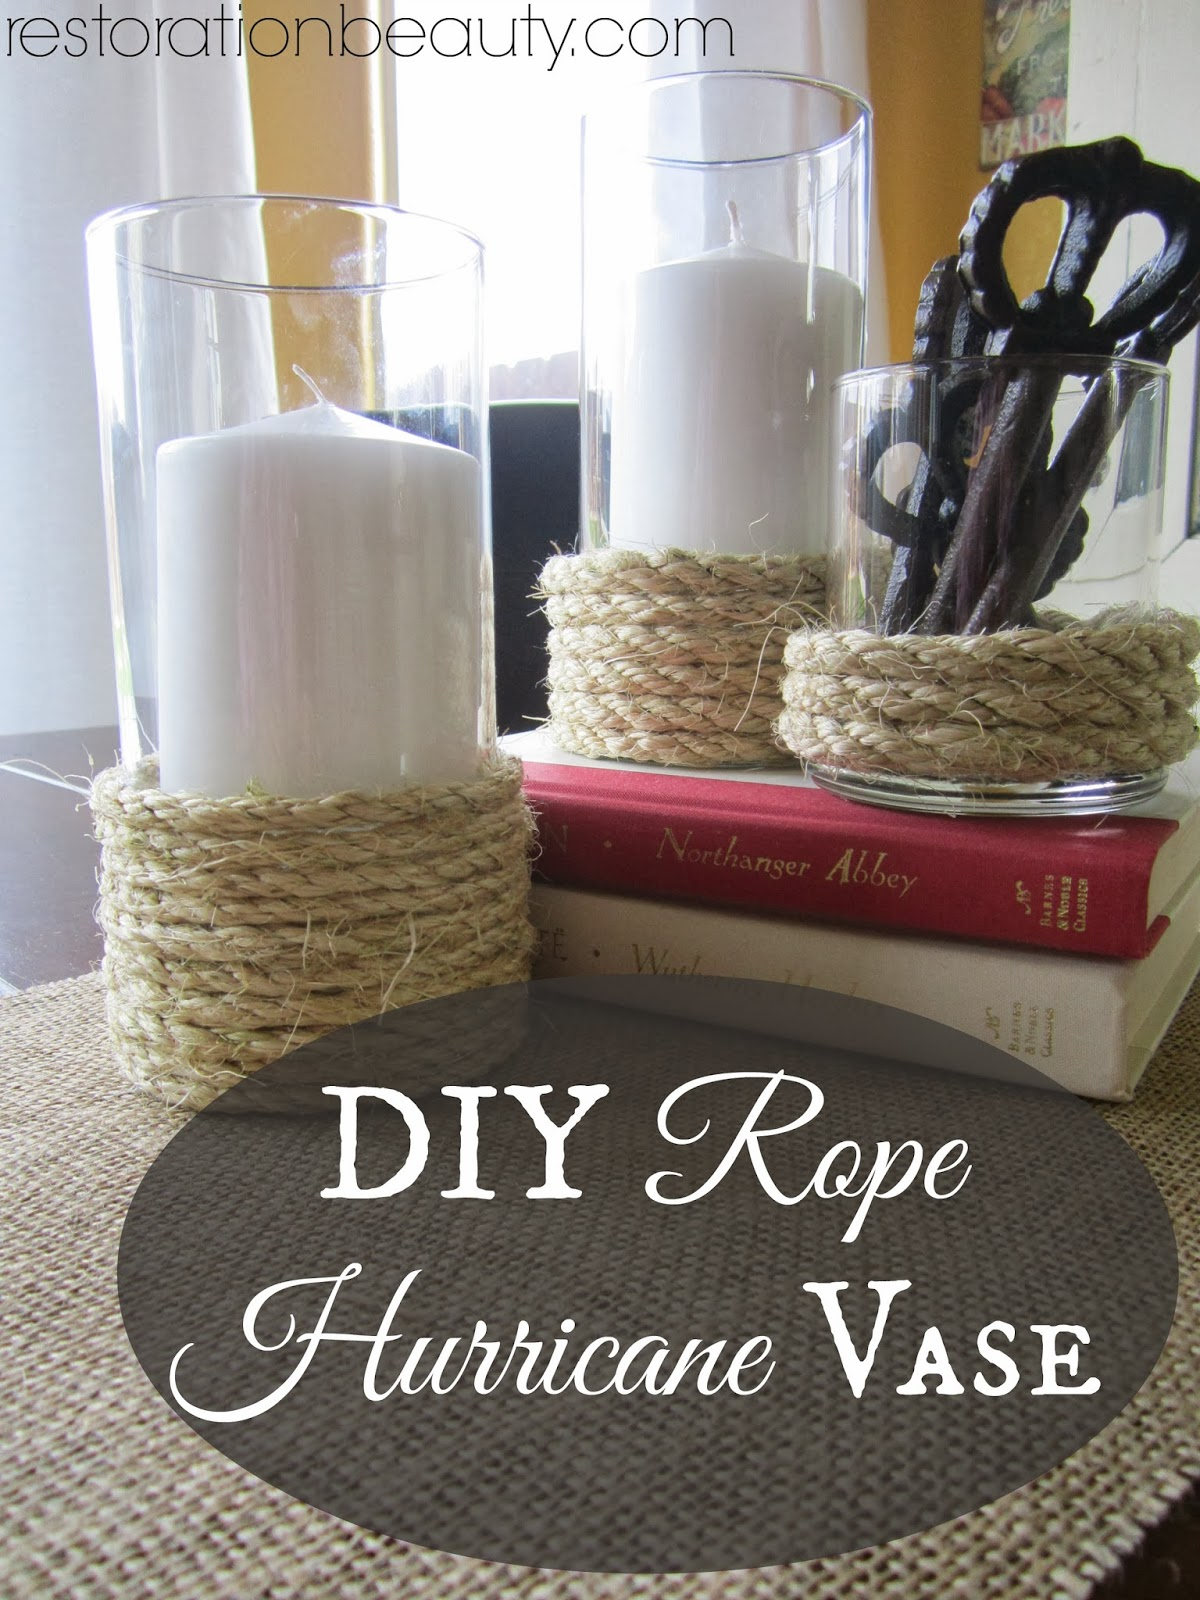 Restoration beauty diy rope hurricane vases candle holders diy rope hurricane vases candle holders reviewsmspy